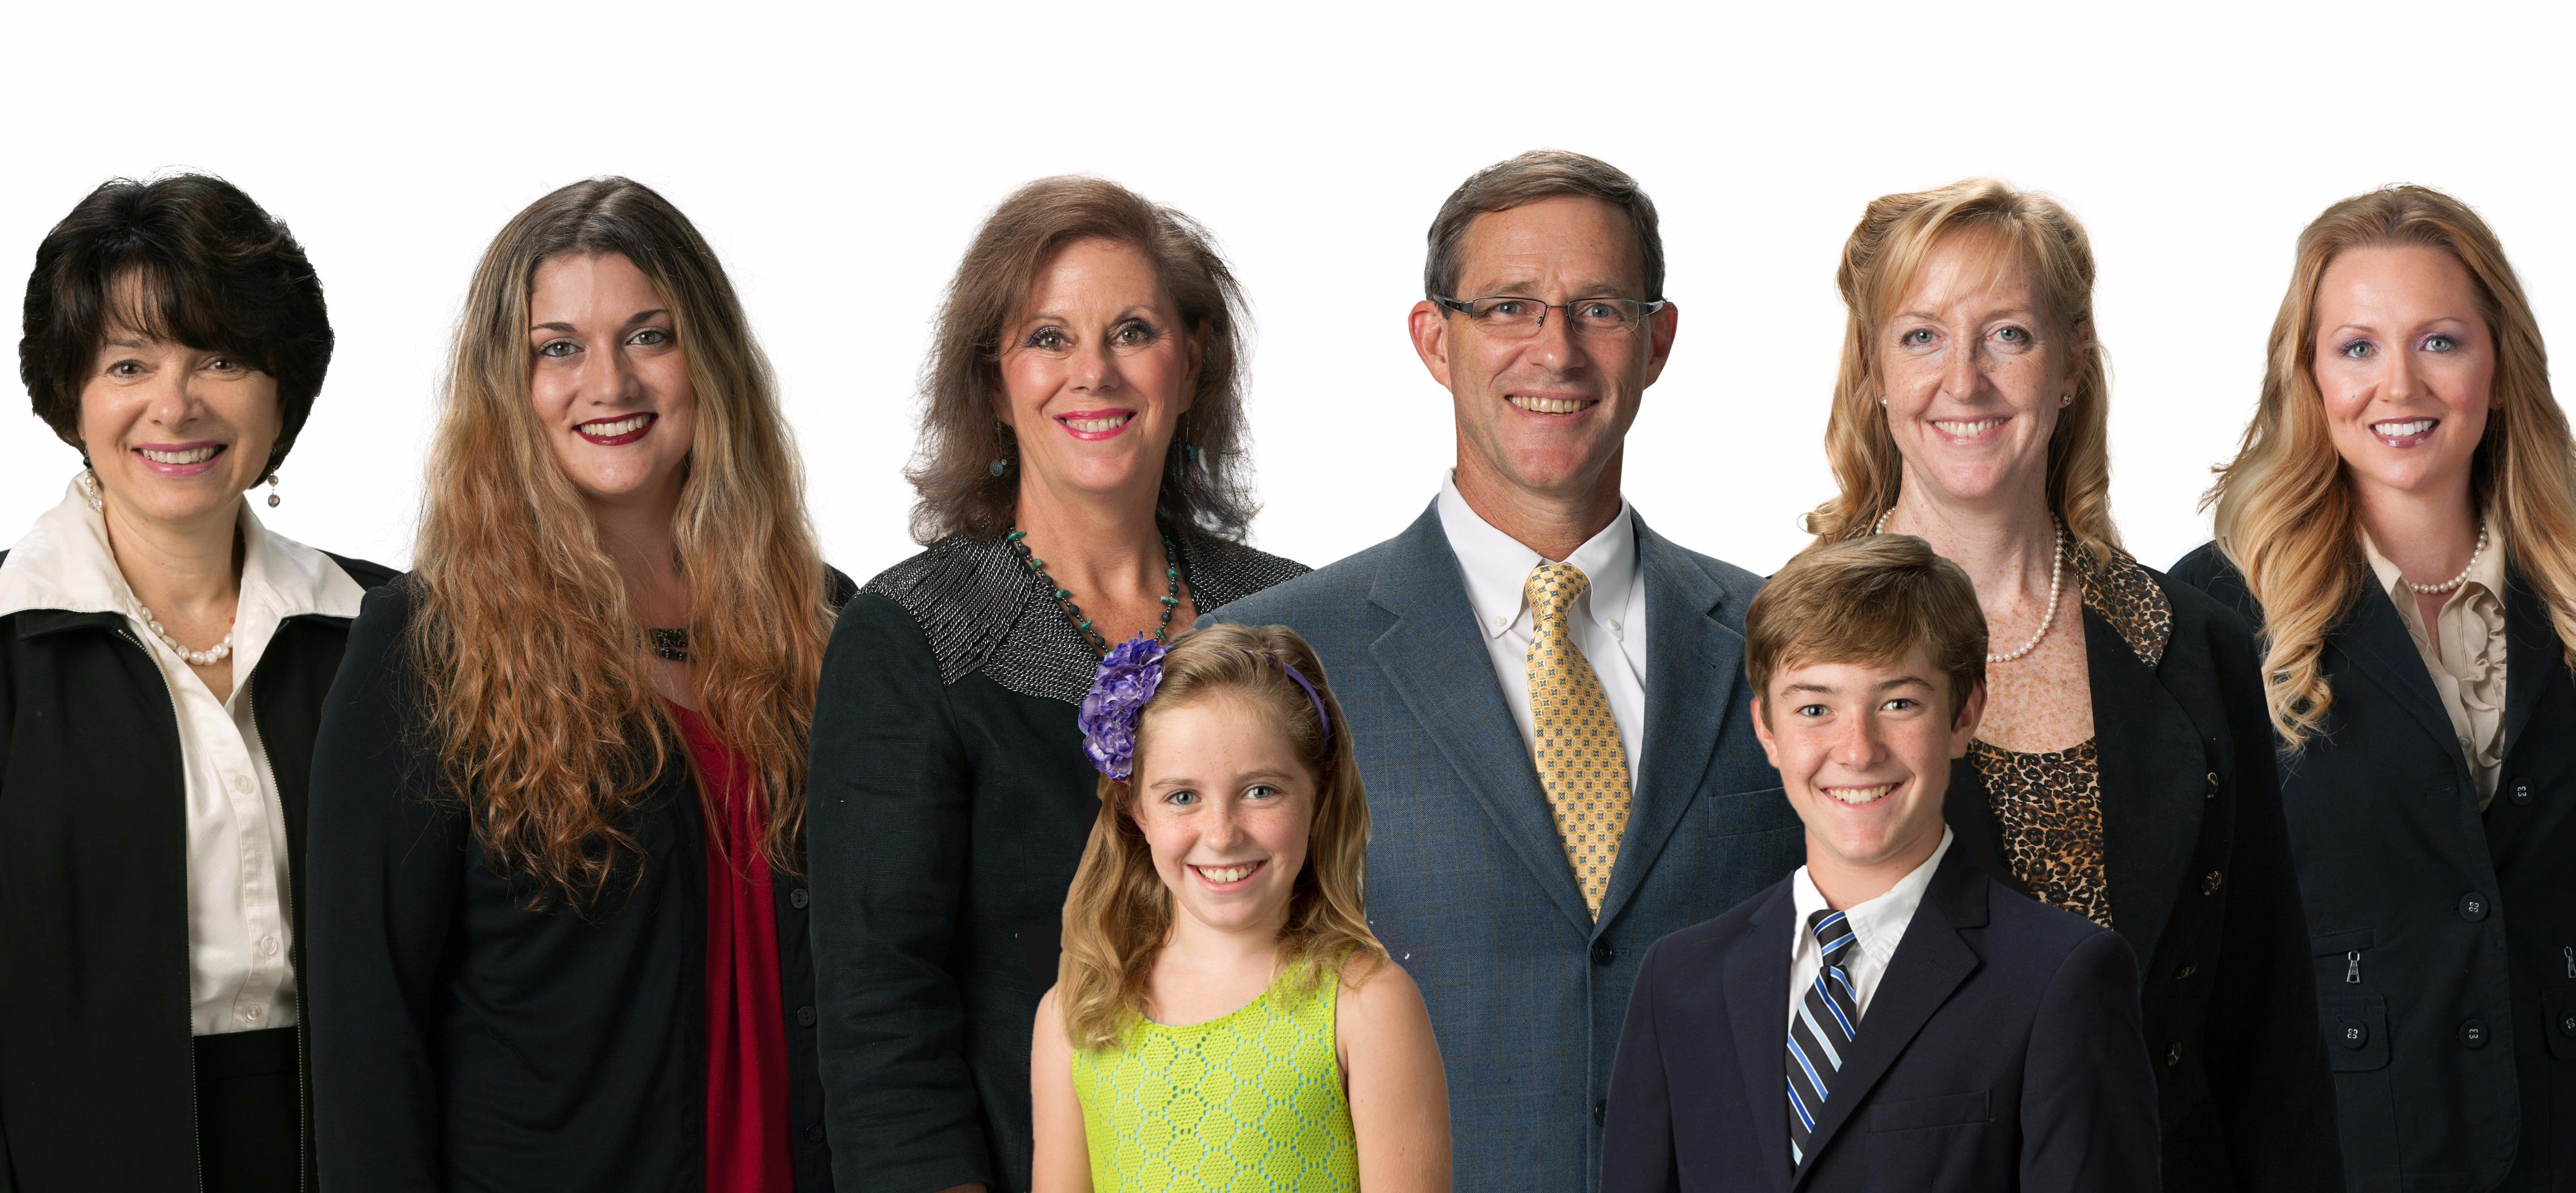 The Cunningham Team at Re/MAX Realty Professionals image 0